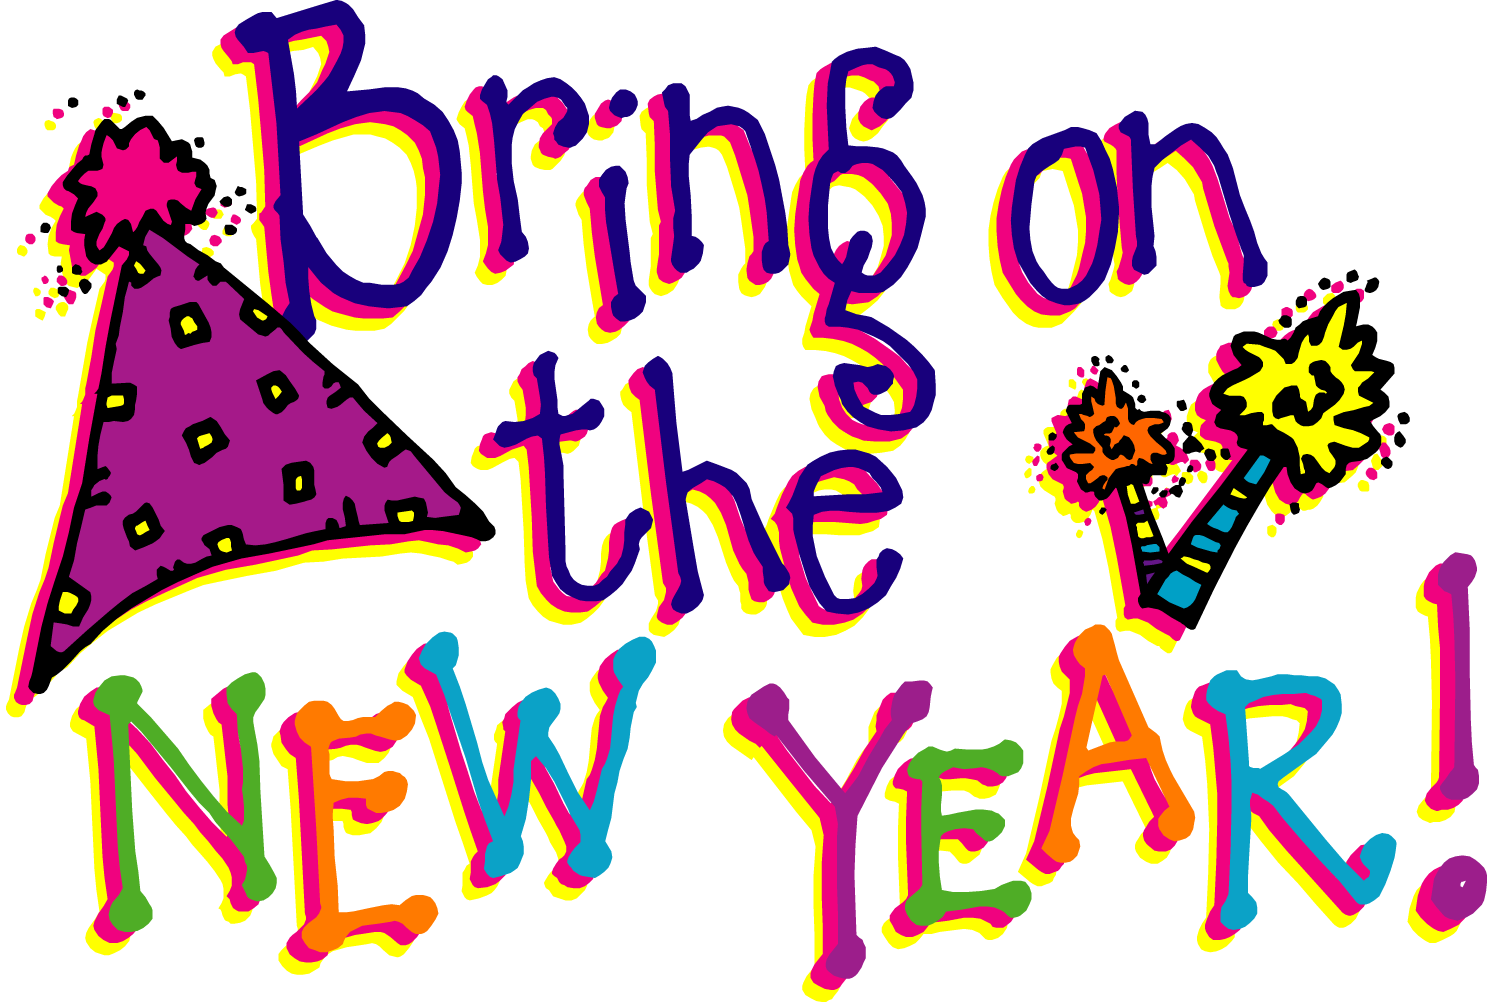 Happy new year clipart 6 mybloggingdiary